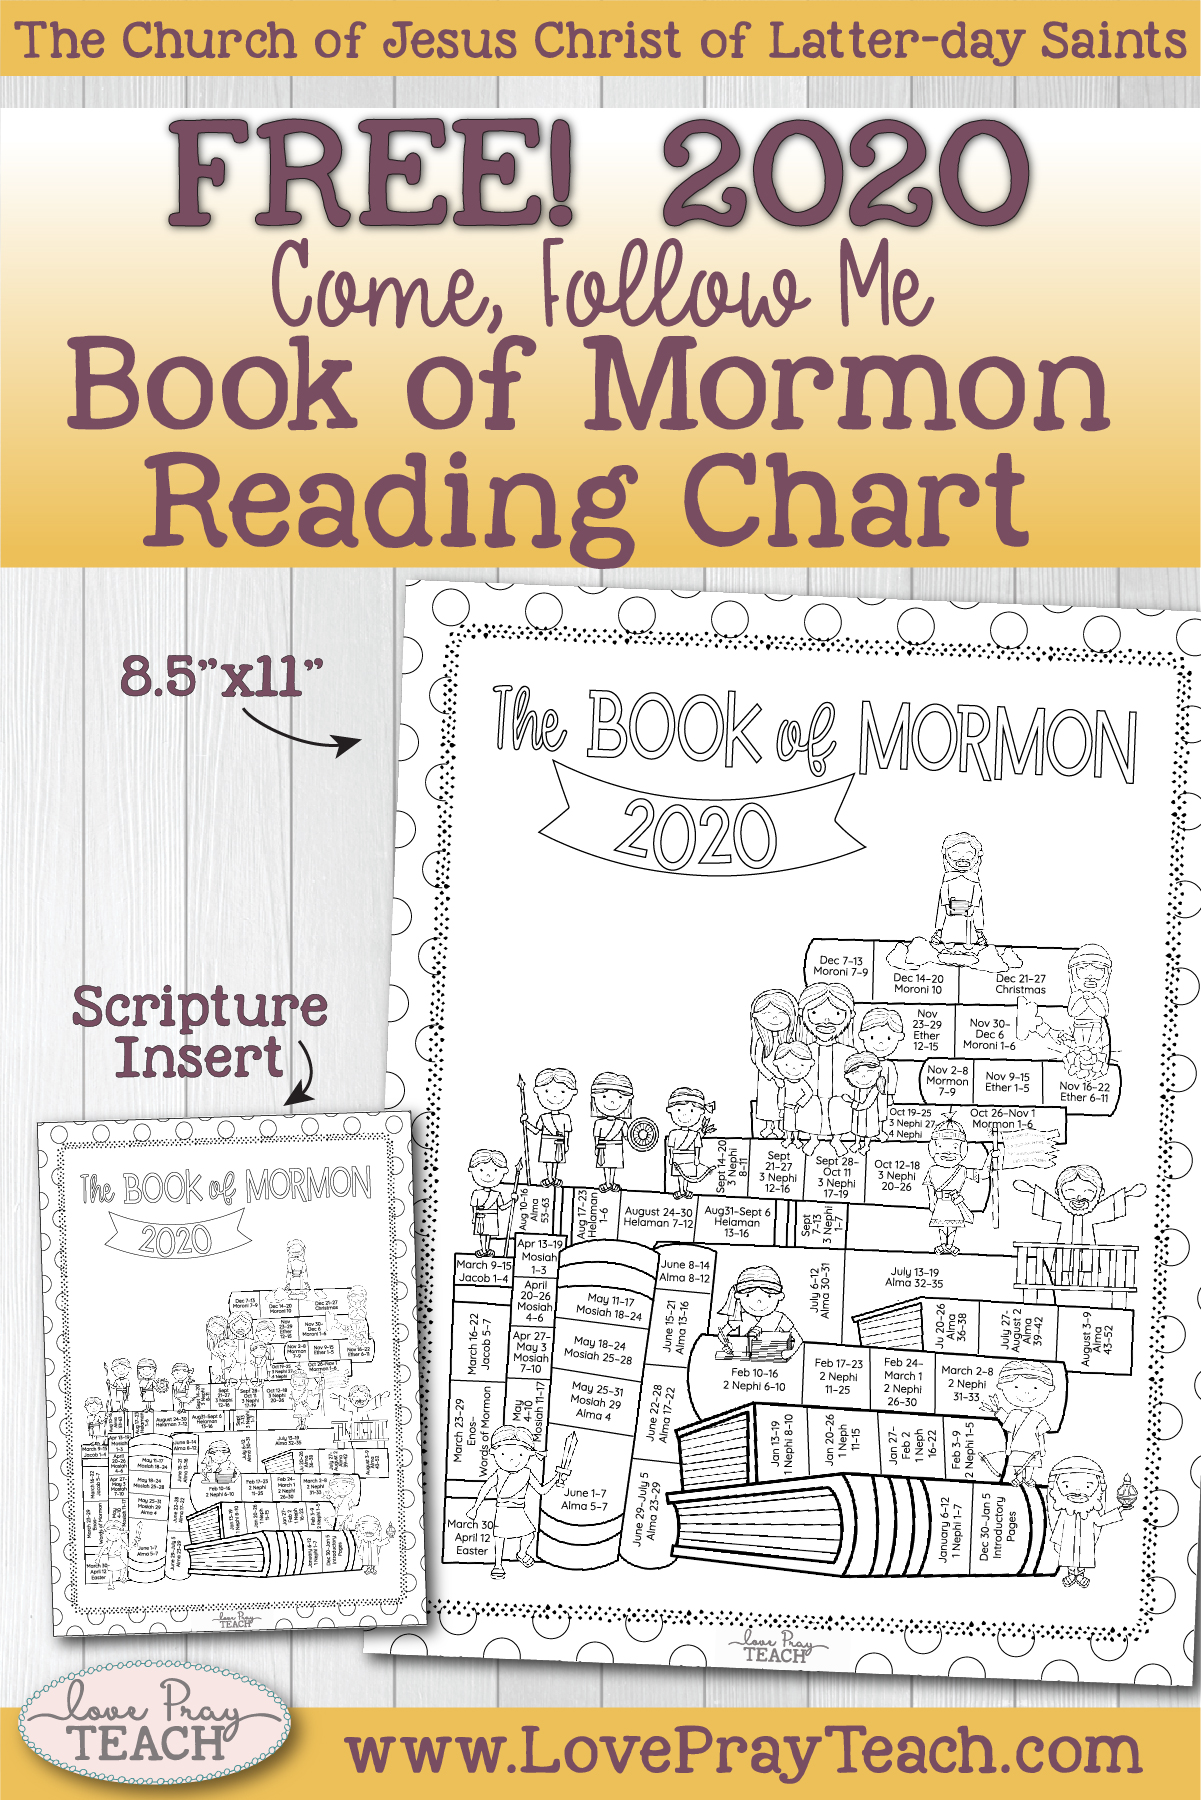 Free Come Follow Me Book Of Mormon Reading Chart